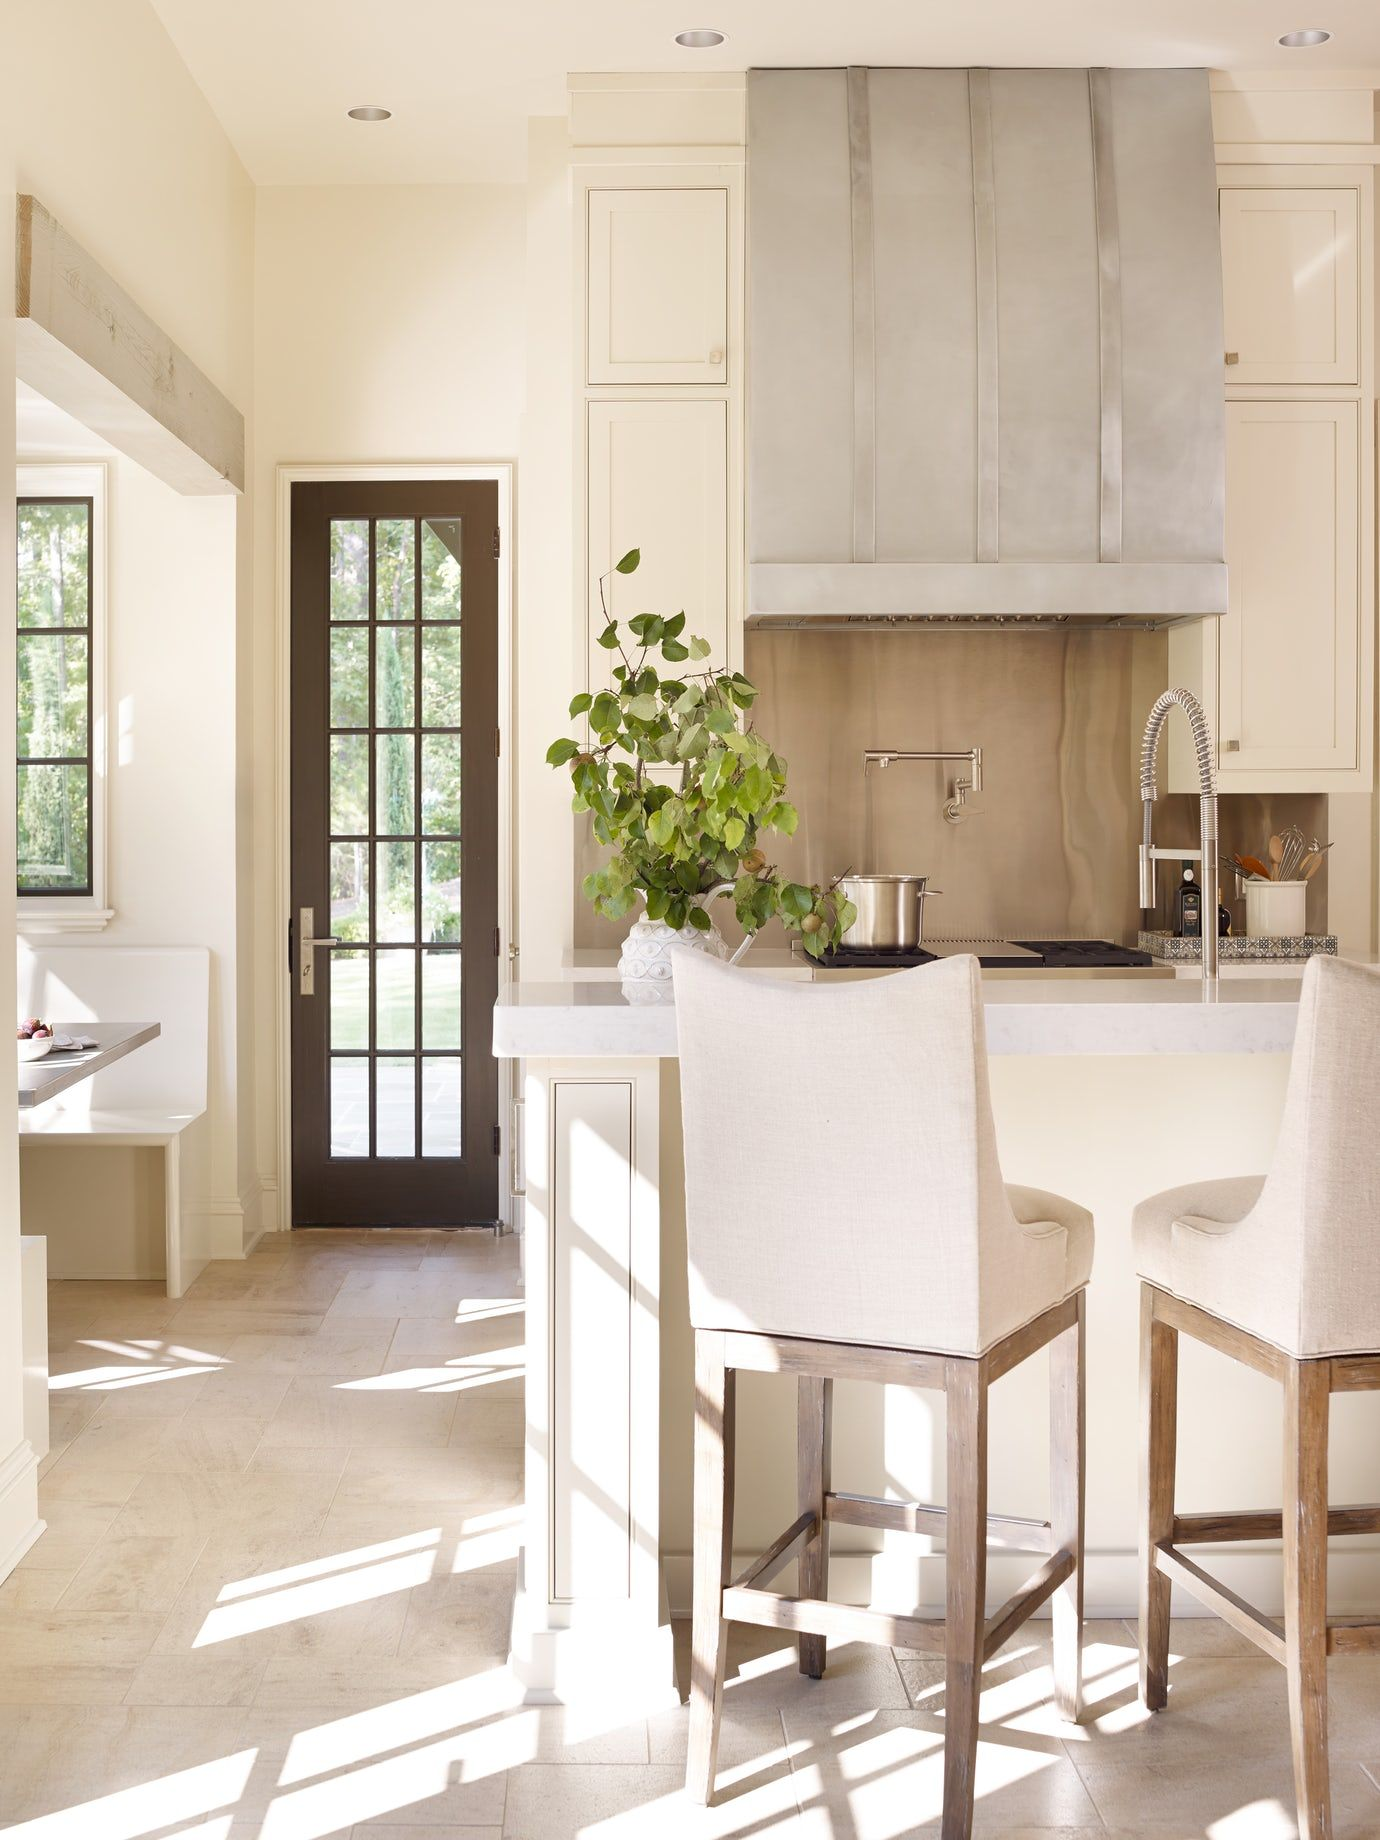 A gorgeous bespoke kitchen with pale tones and lovely texture - Jeffrey Dungan.